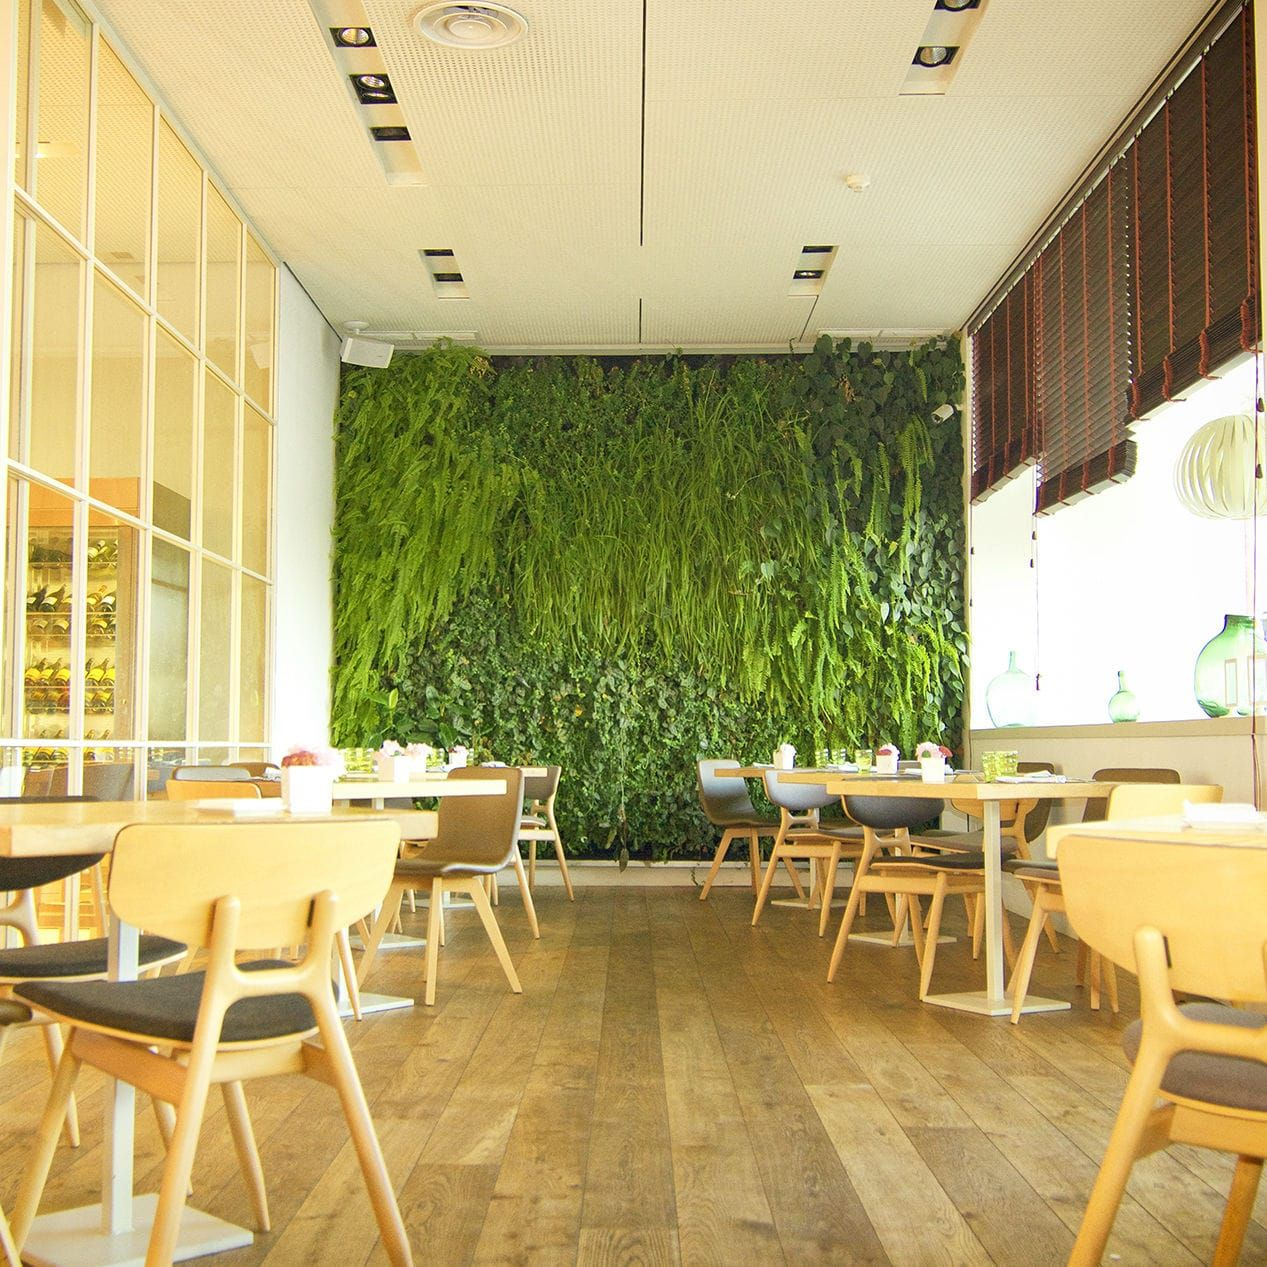 Indoor green wall / outdoor / modular BIOFIVER IGNIAGREEN | Jardines ...